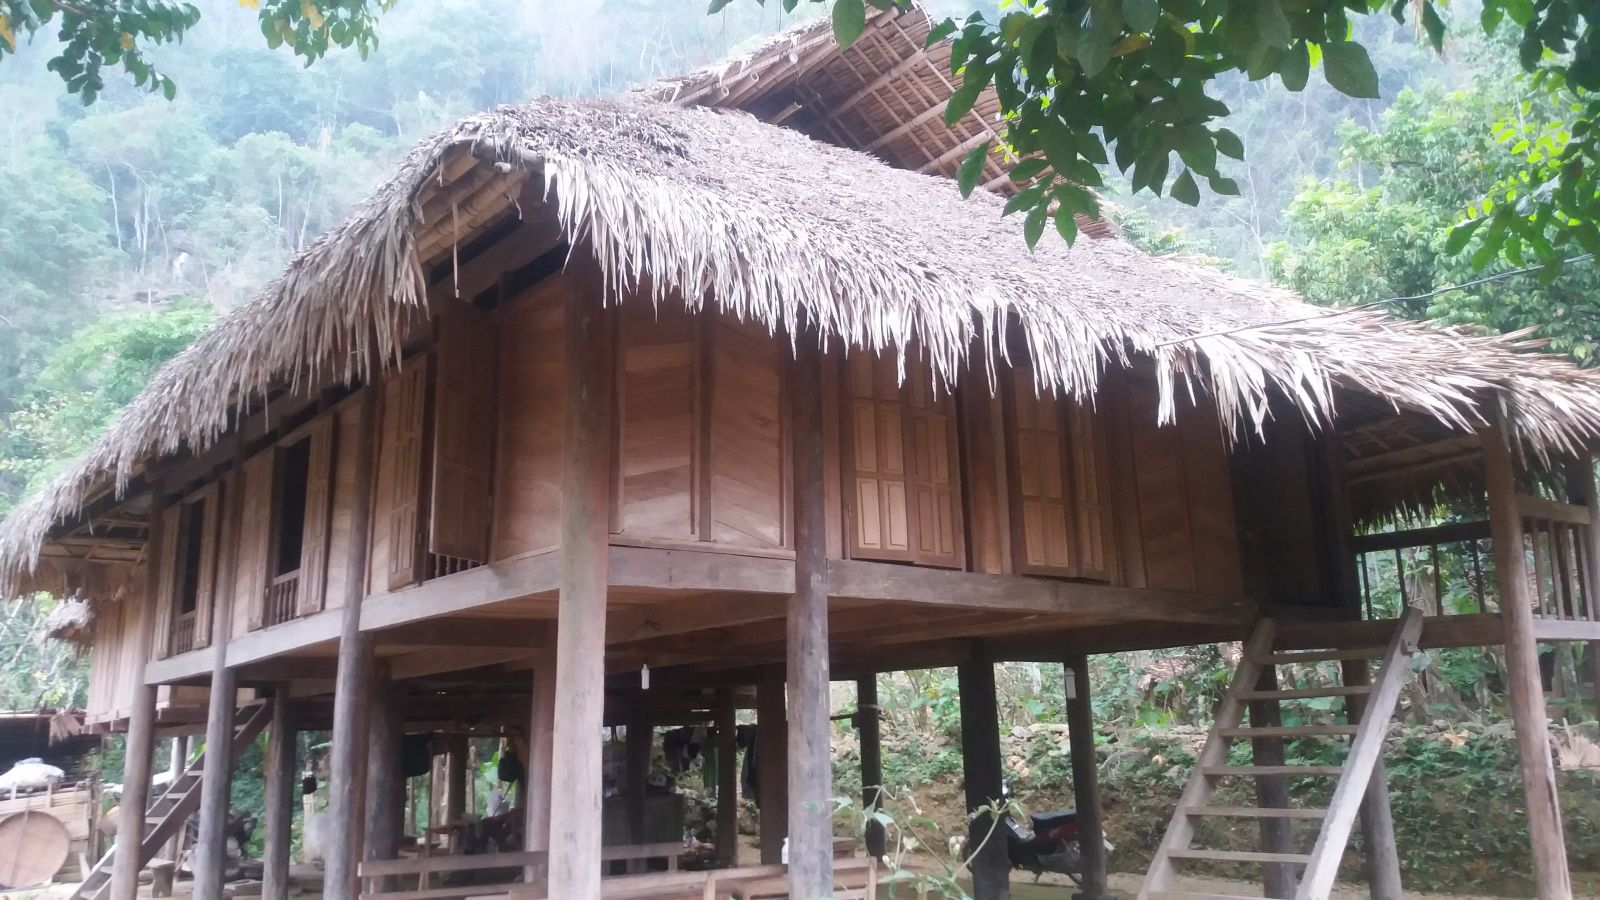 Mr. Ba's homestay - Hieu village - Pu Luong Nature Reserve